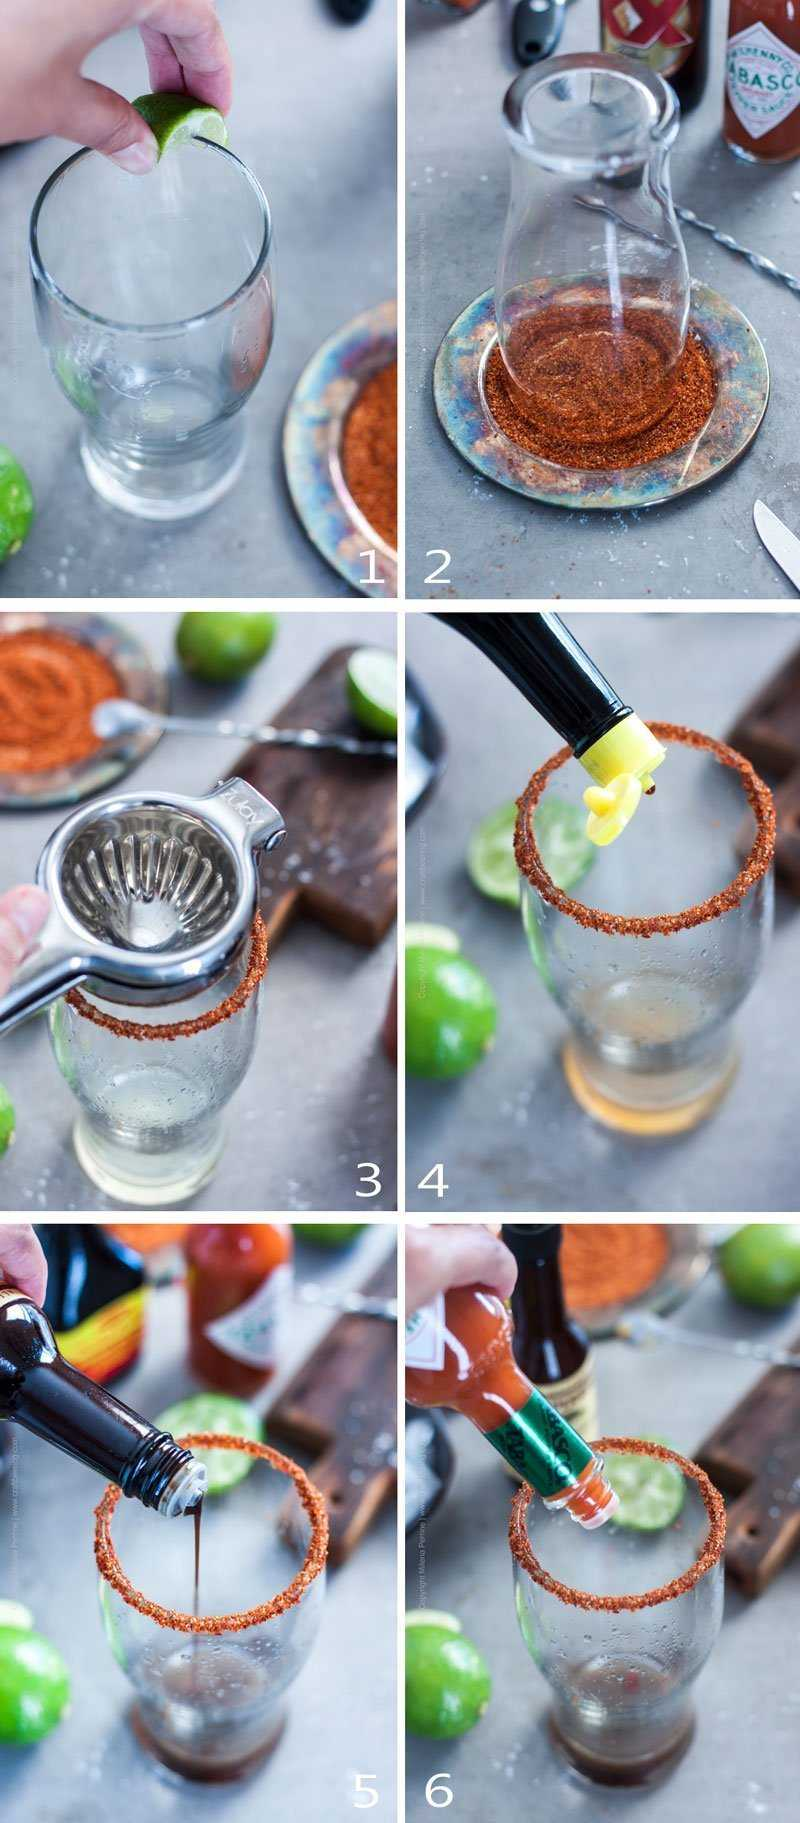 Step by step making an Michelada.